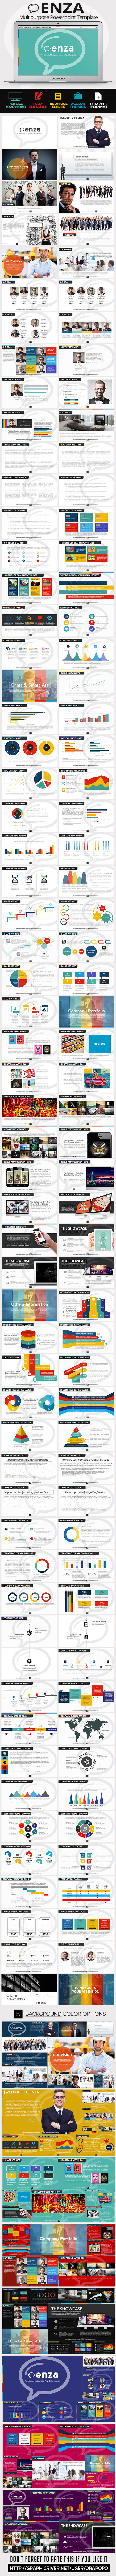 GraphicRiver Enza Multipurpose Powerpoint Template 9254831